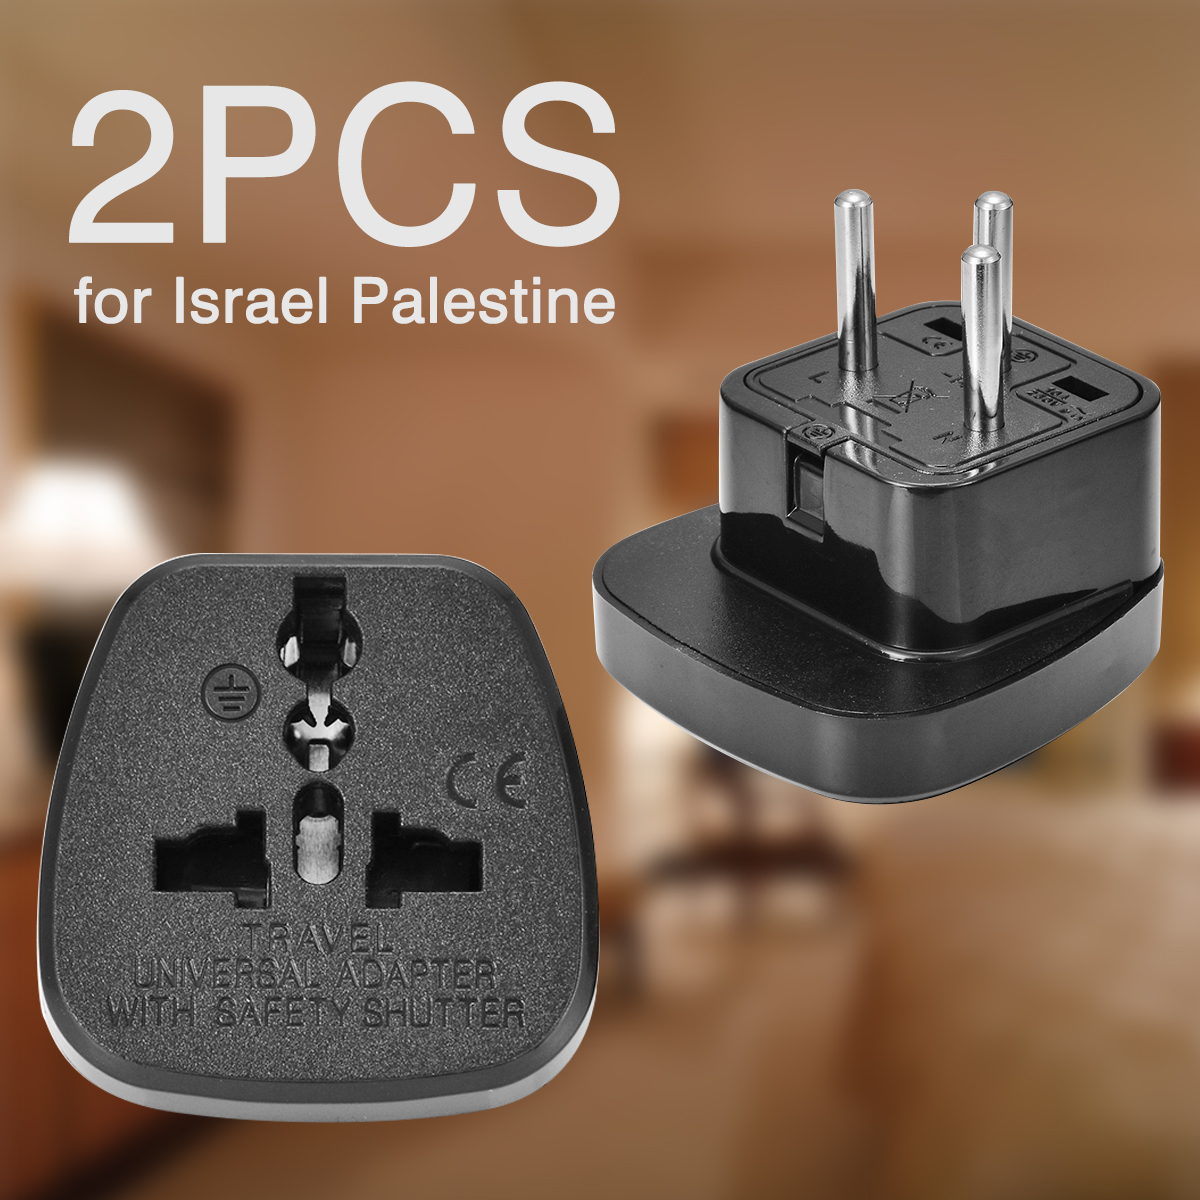 Onsale 2pcs Type H Ground Travel Trip Journey Plug Adapter for Israel Palestine